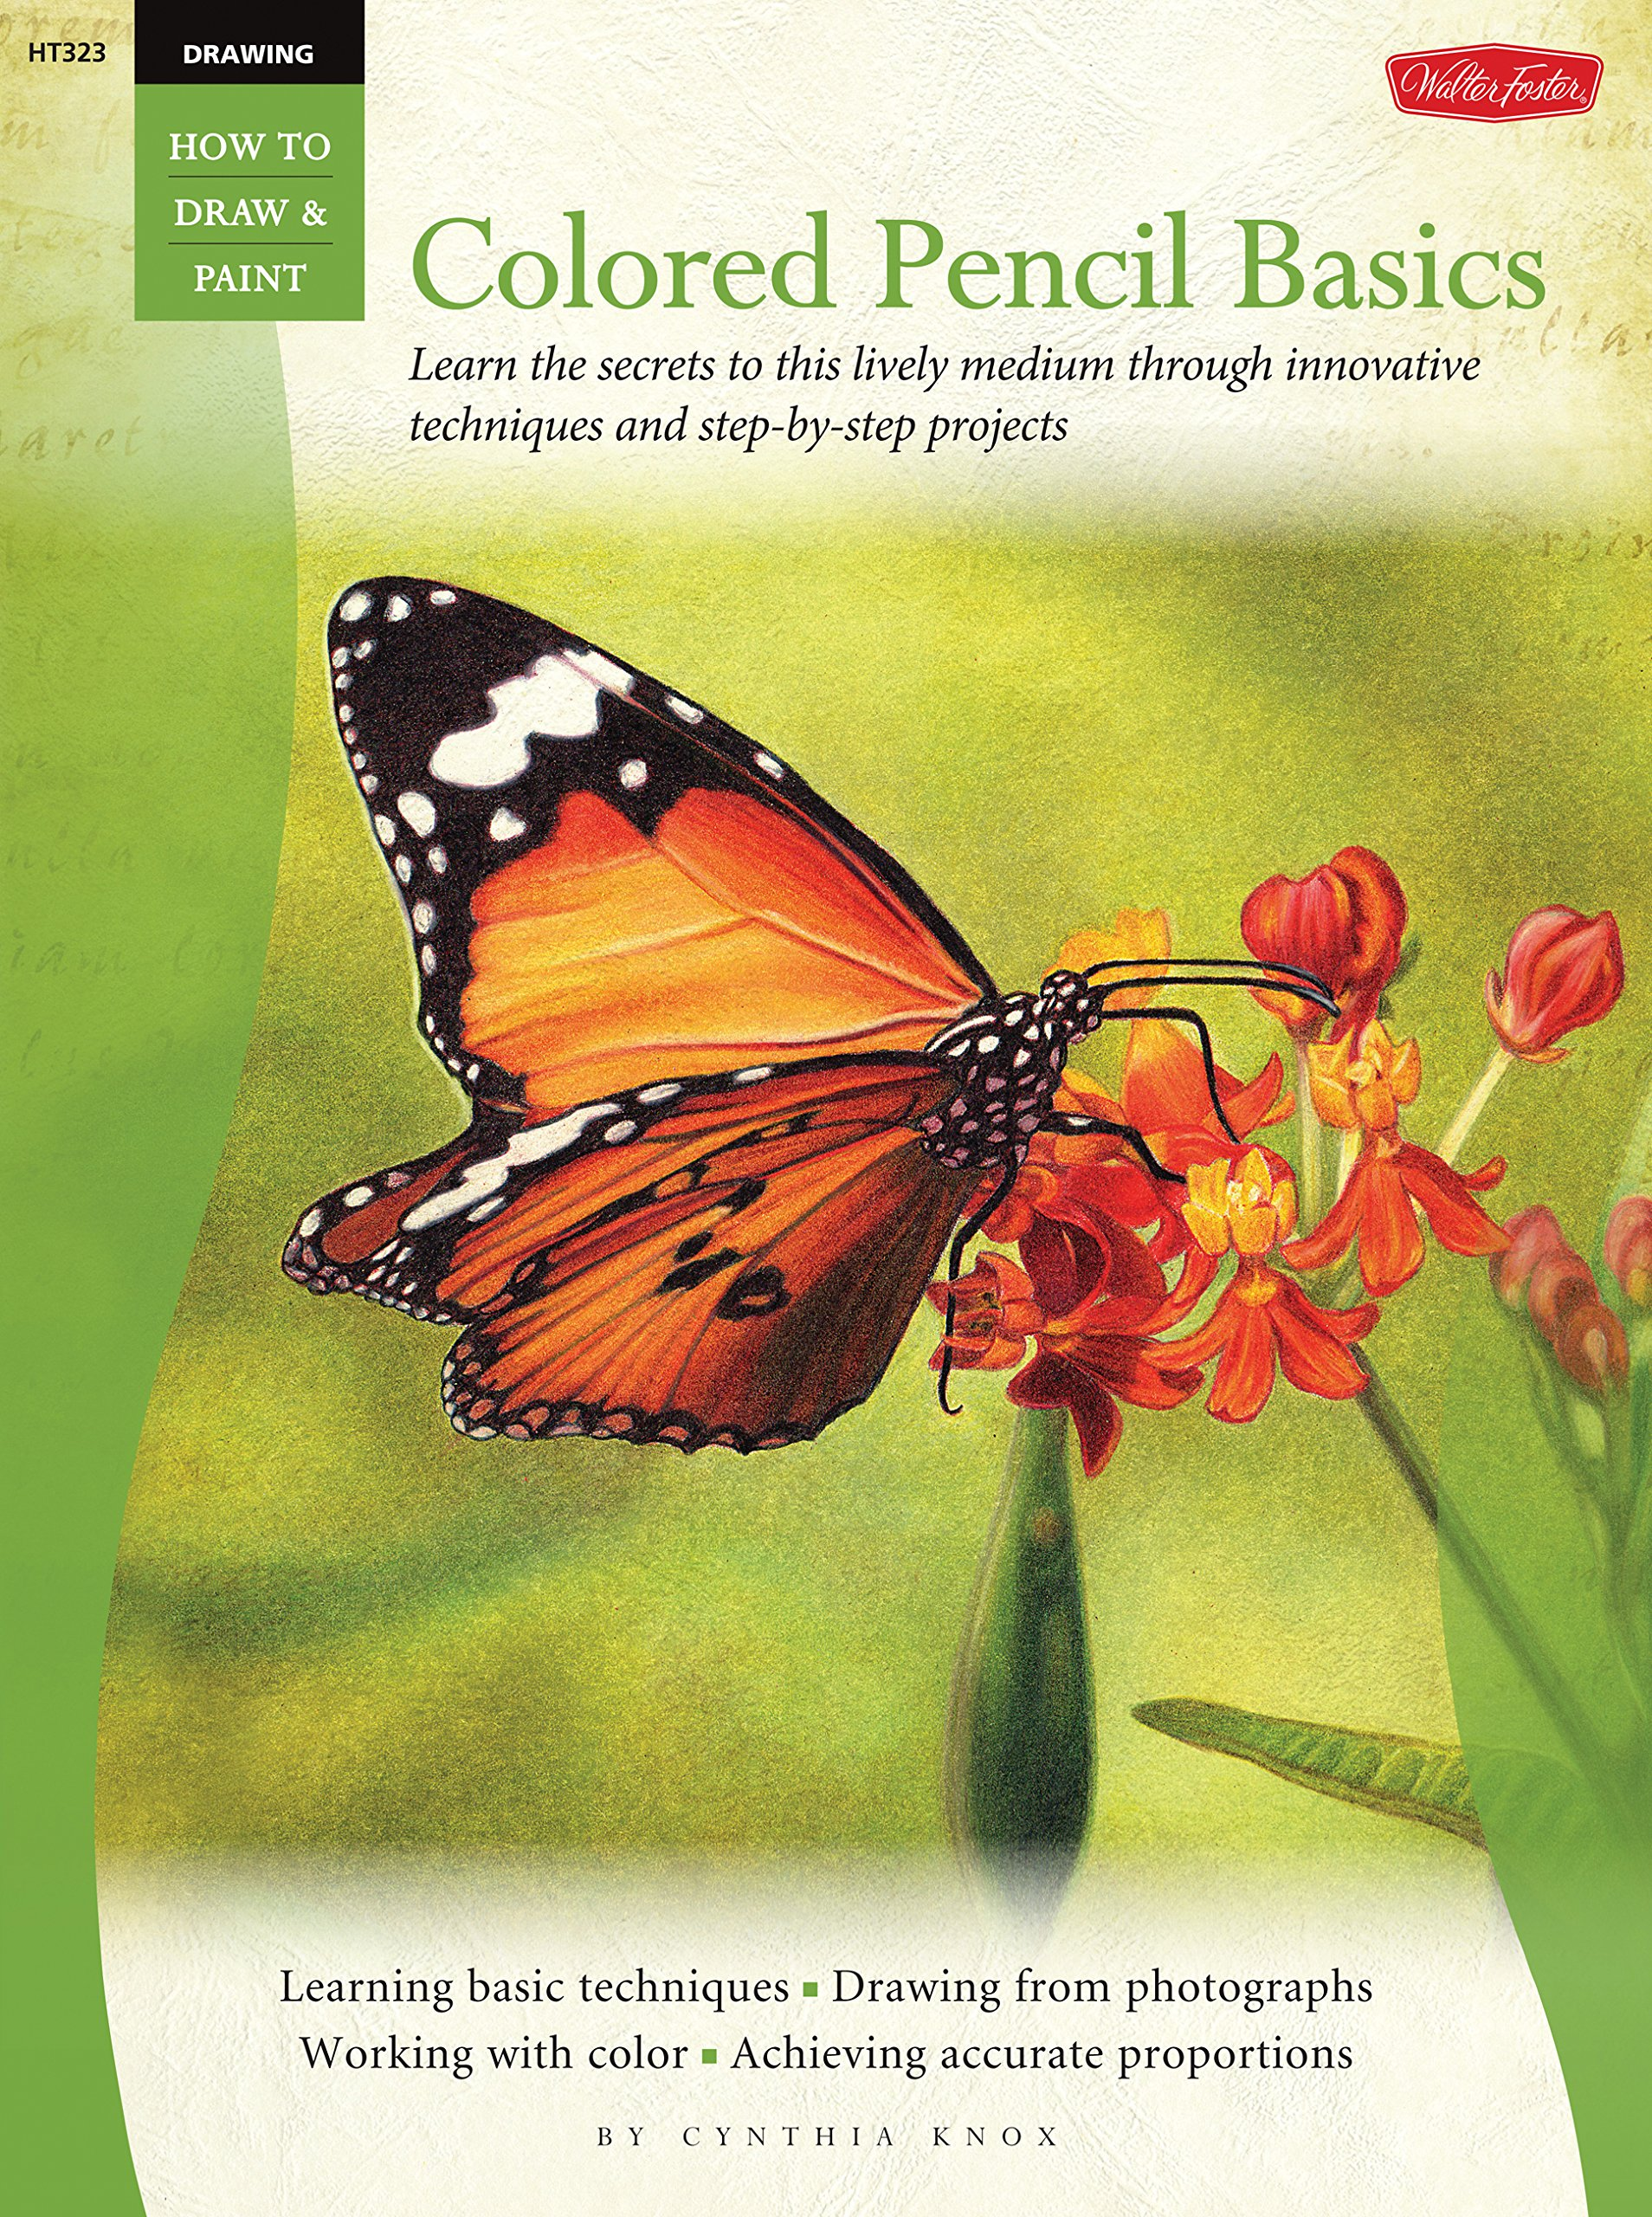 Download Drawing: Colored Pencil Basics (How to Draw & Paint) ebook